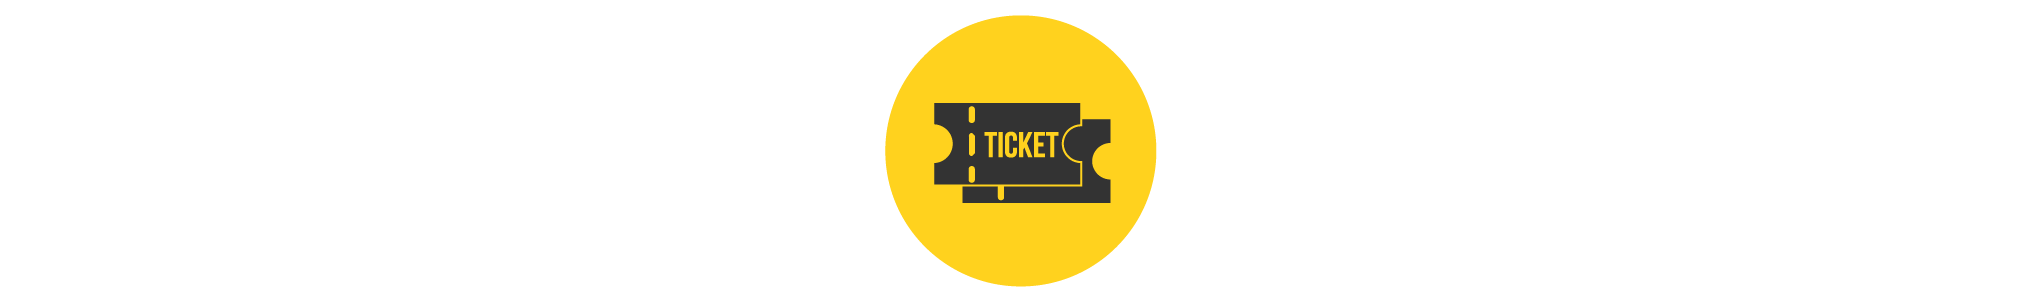 TICKETS AND DISCOUNT IN ITALY